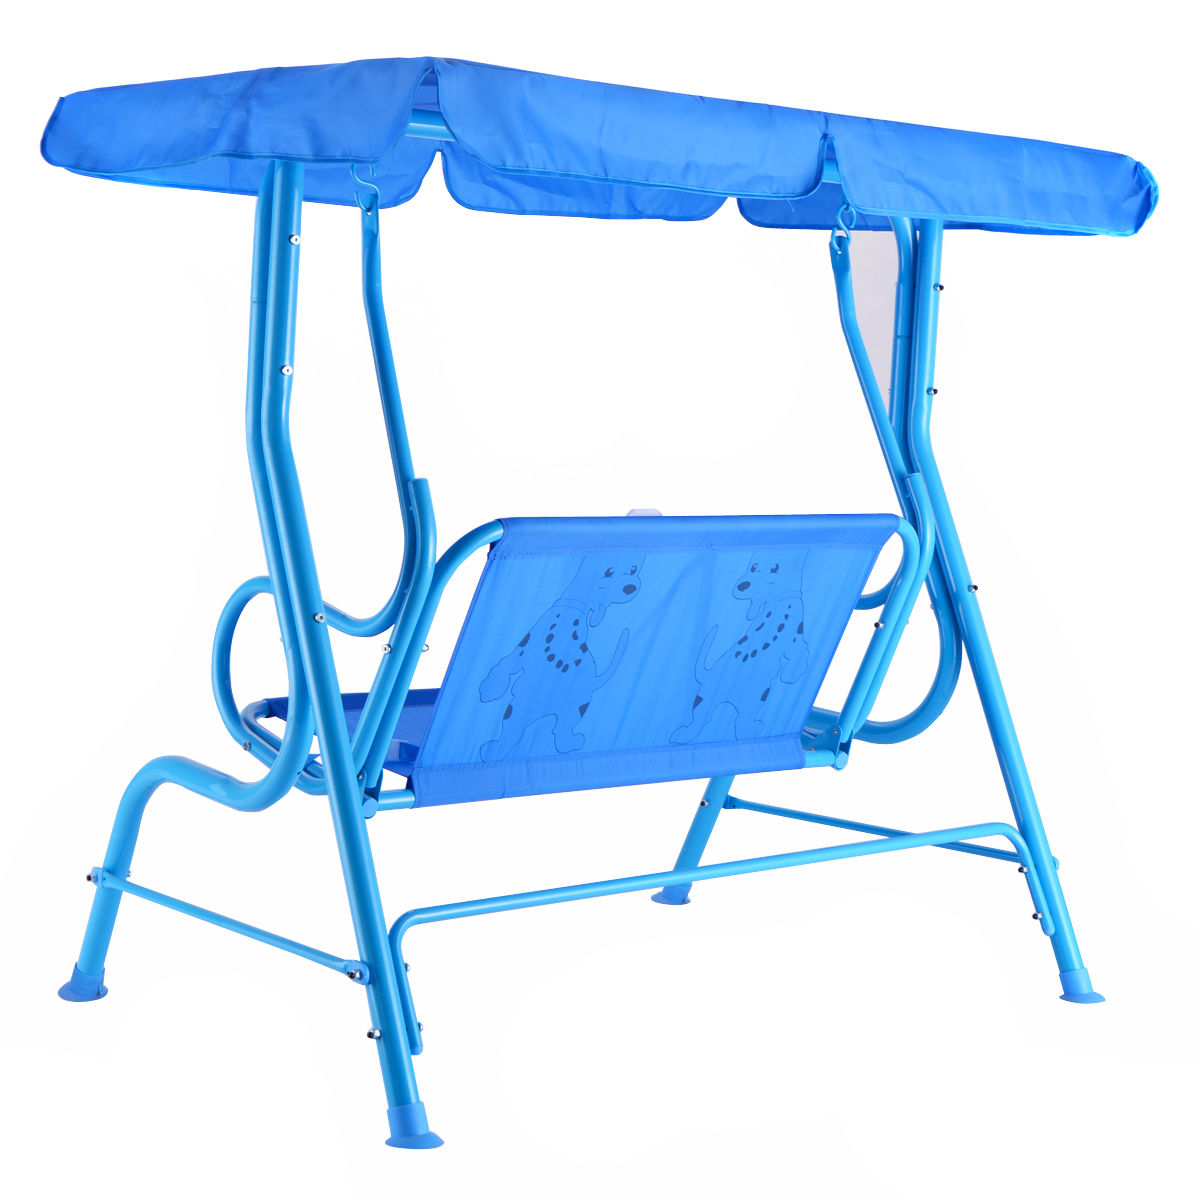 costway kids patio swing chair children porch bench canopy 2 person yard furniture blue 4 - Patio Swing Chair